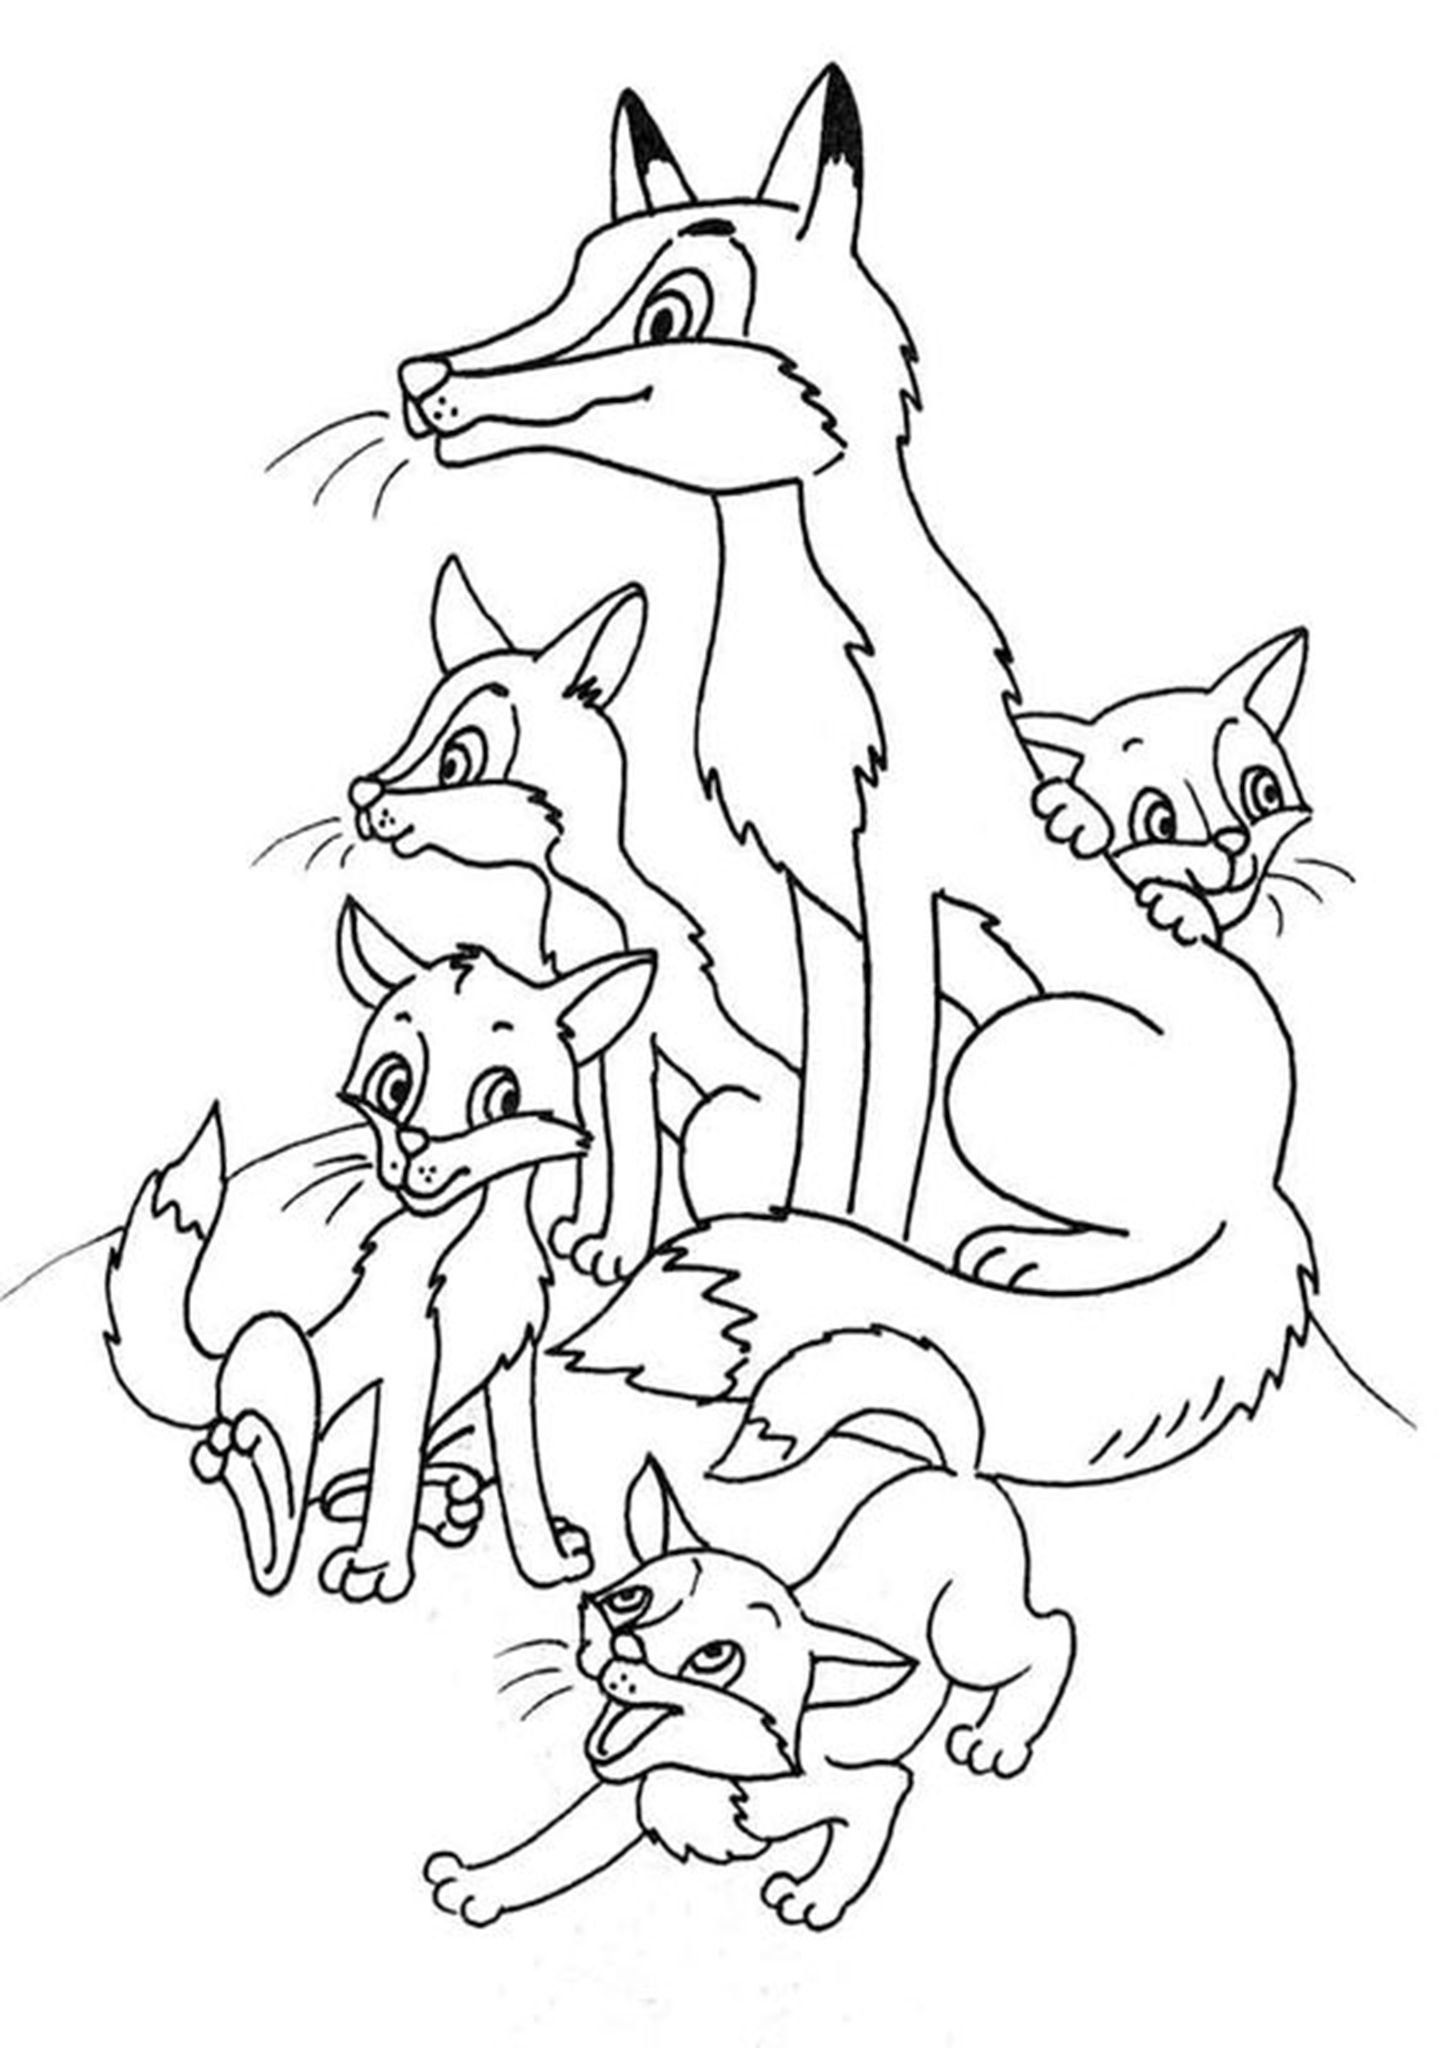 Free Easy To Print Fox Coloring Pages Fox Coloring Page Family Coloring Pages Animal Coloring Pages